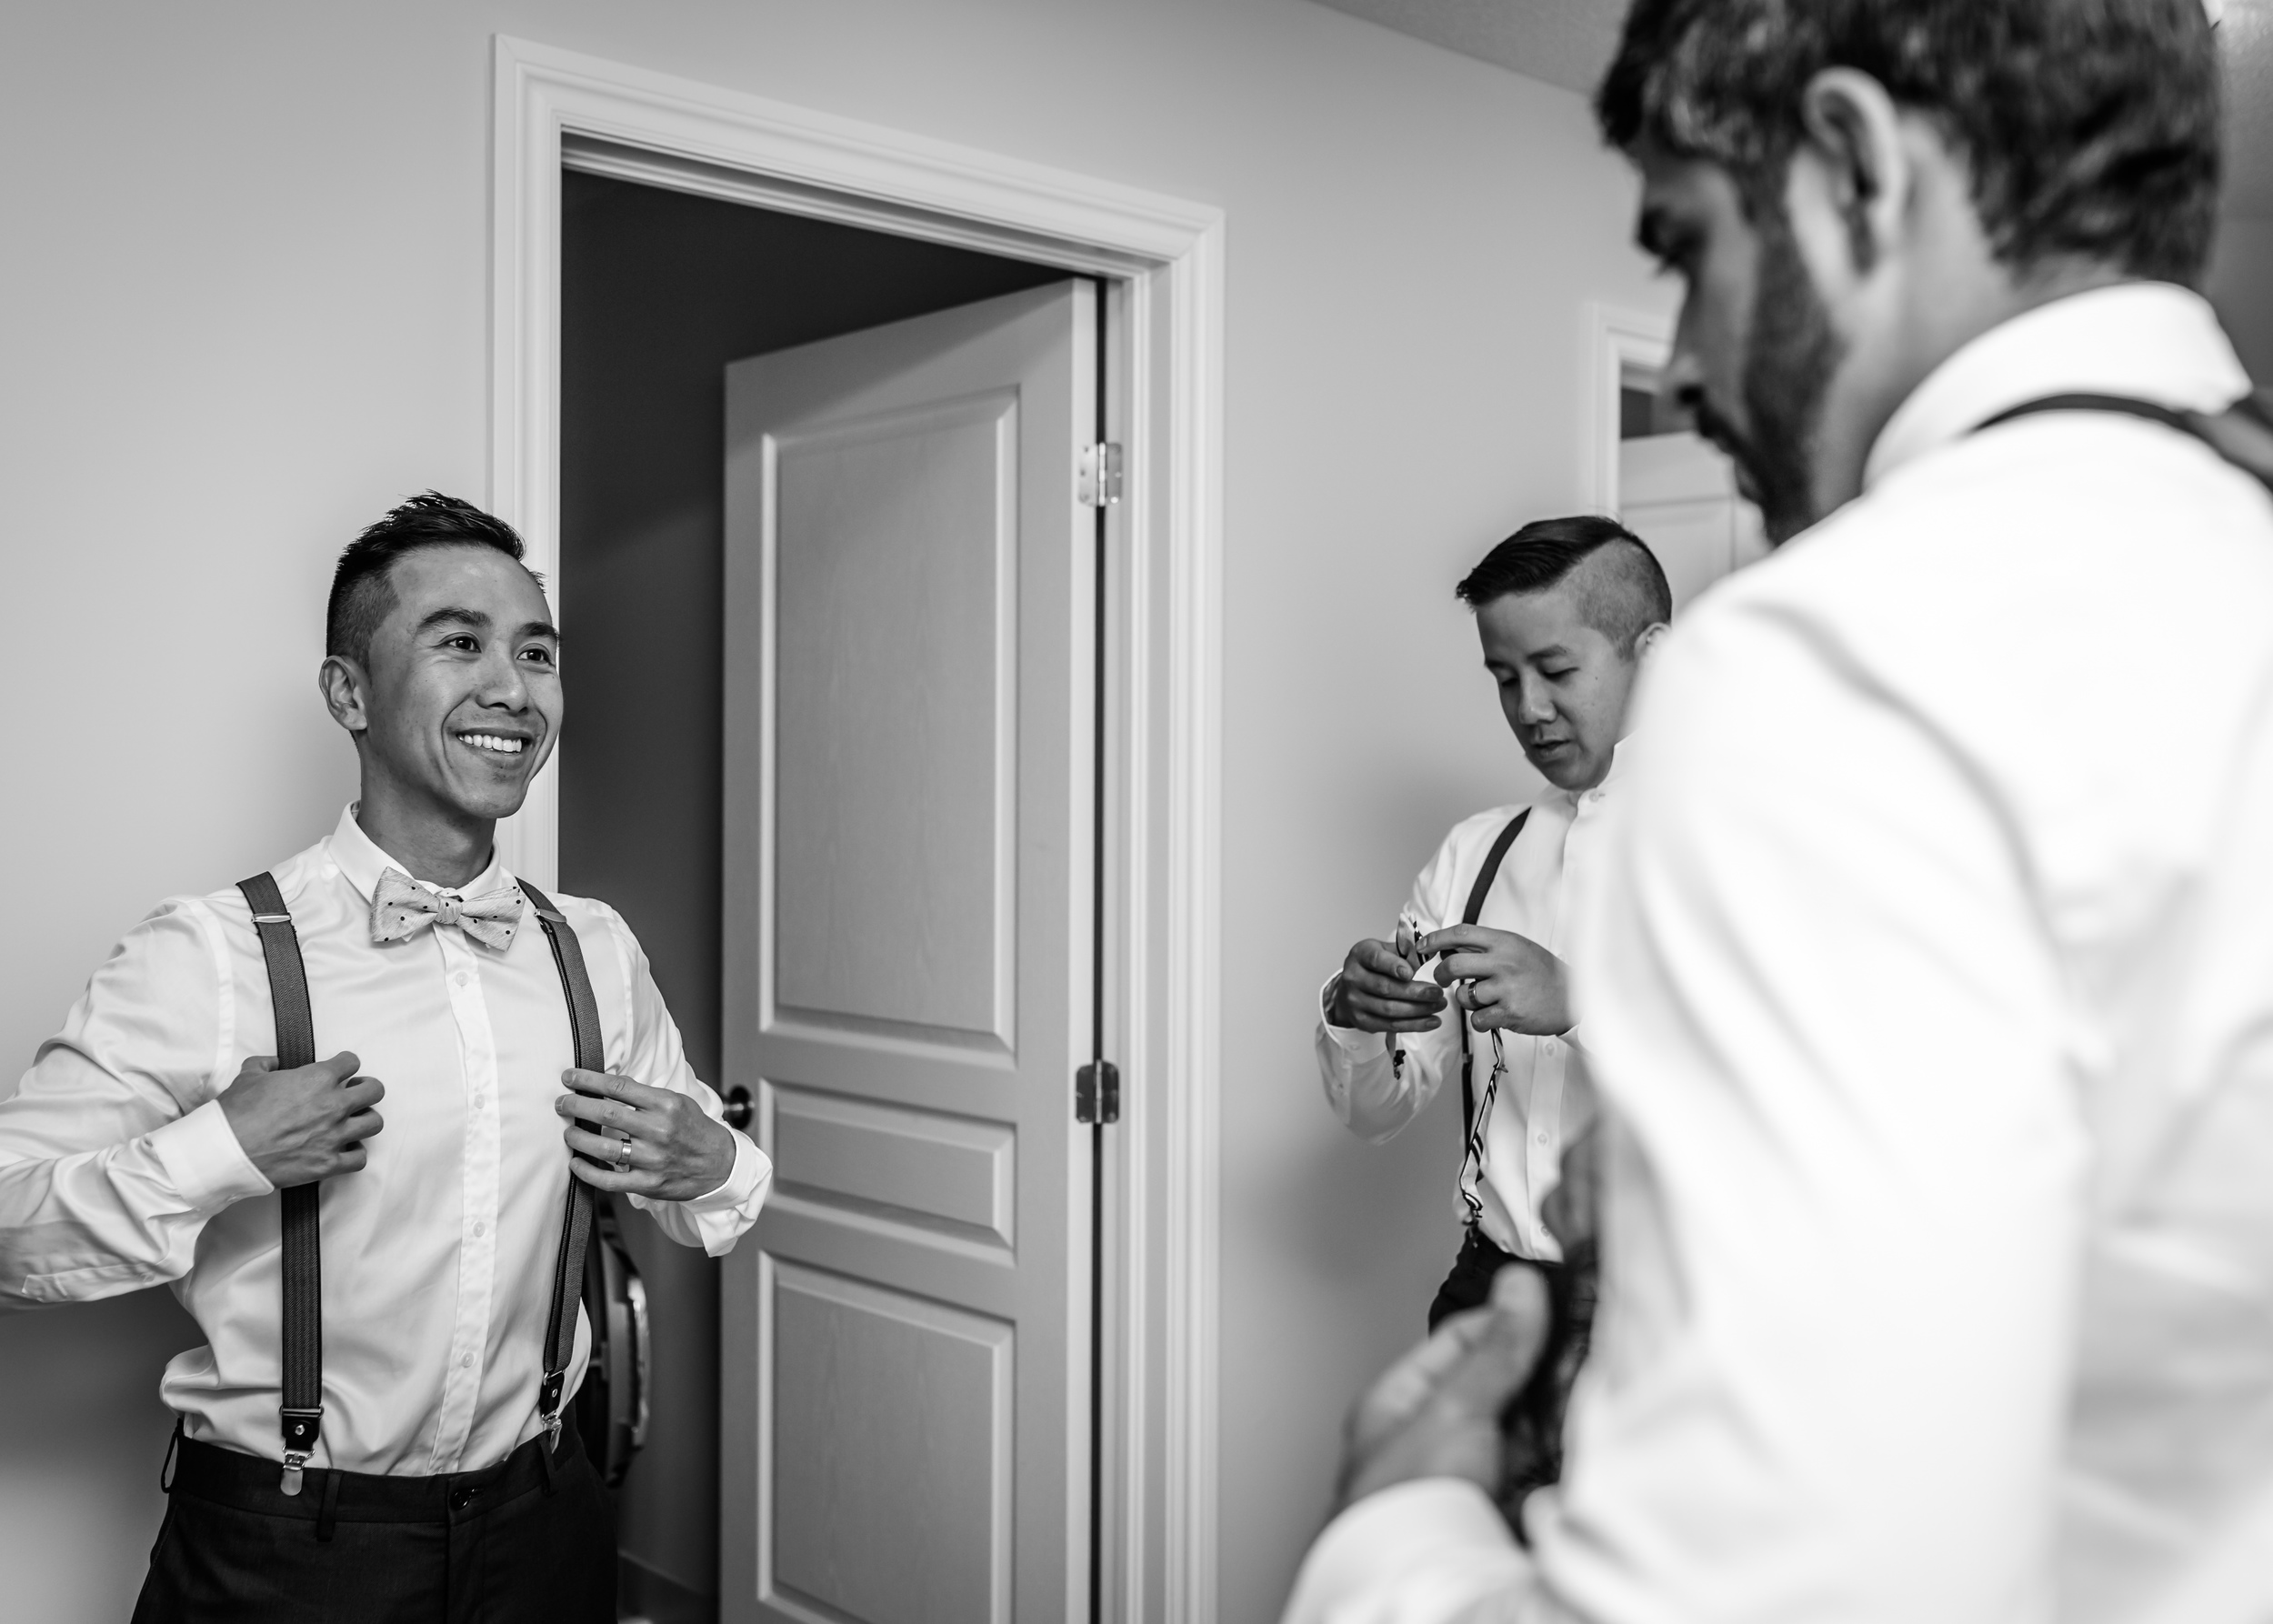 The groom and his groomsmen getting ready